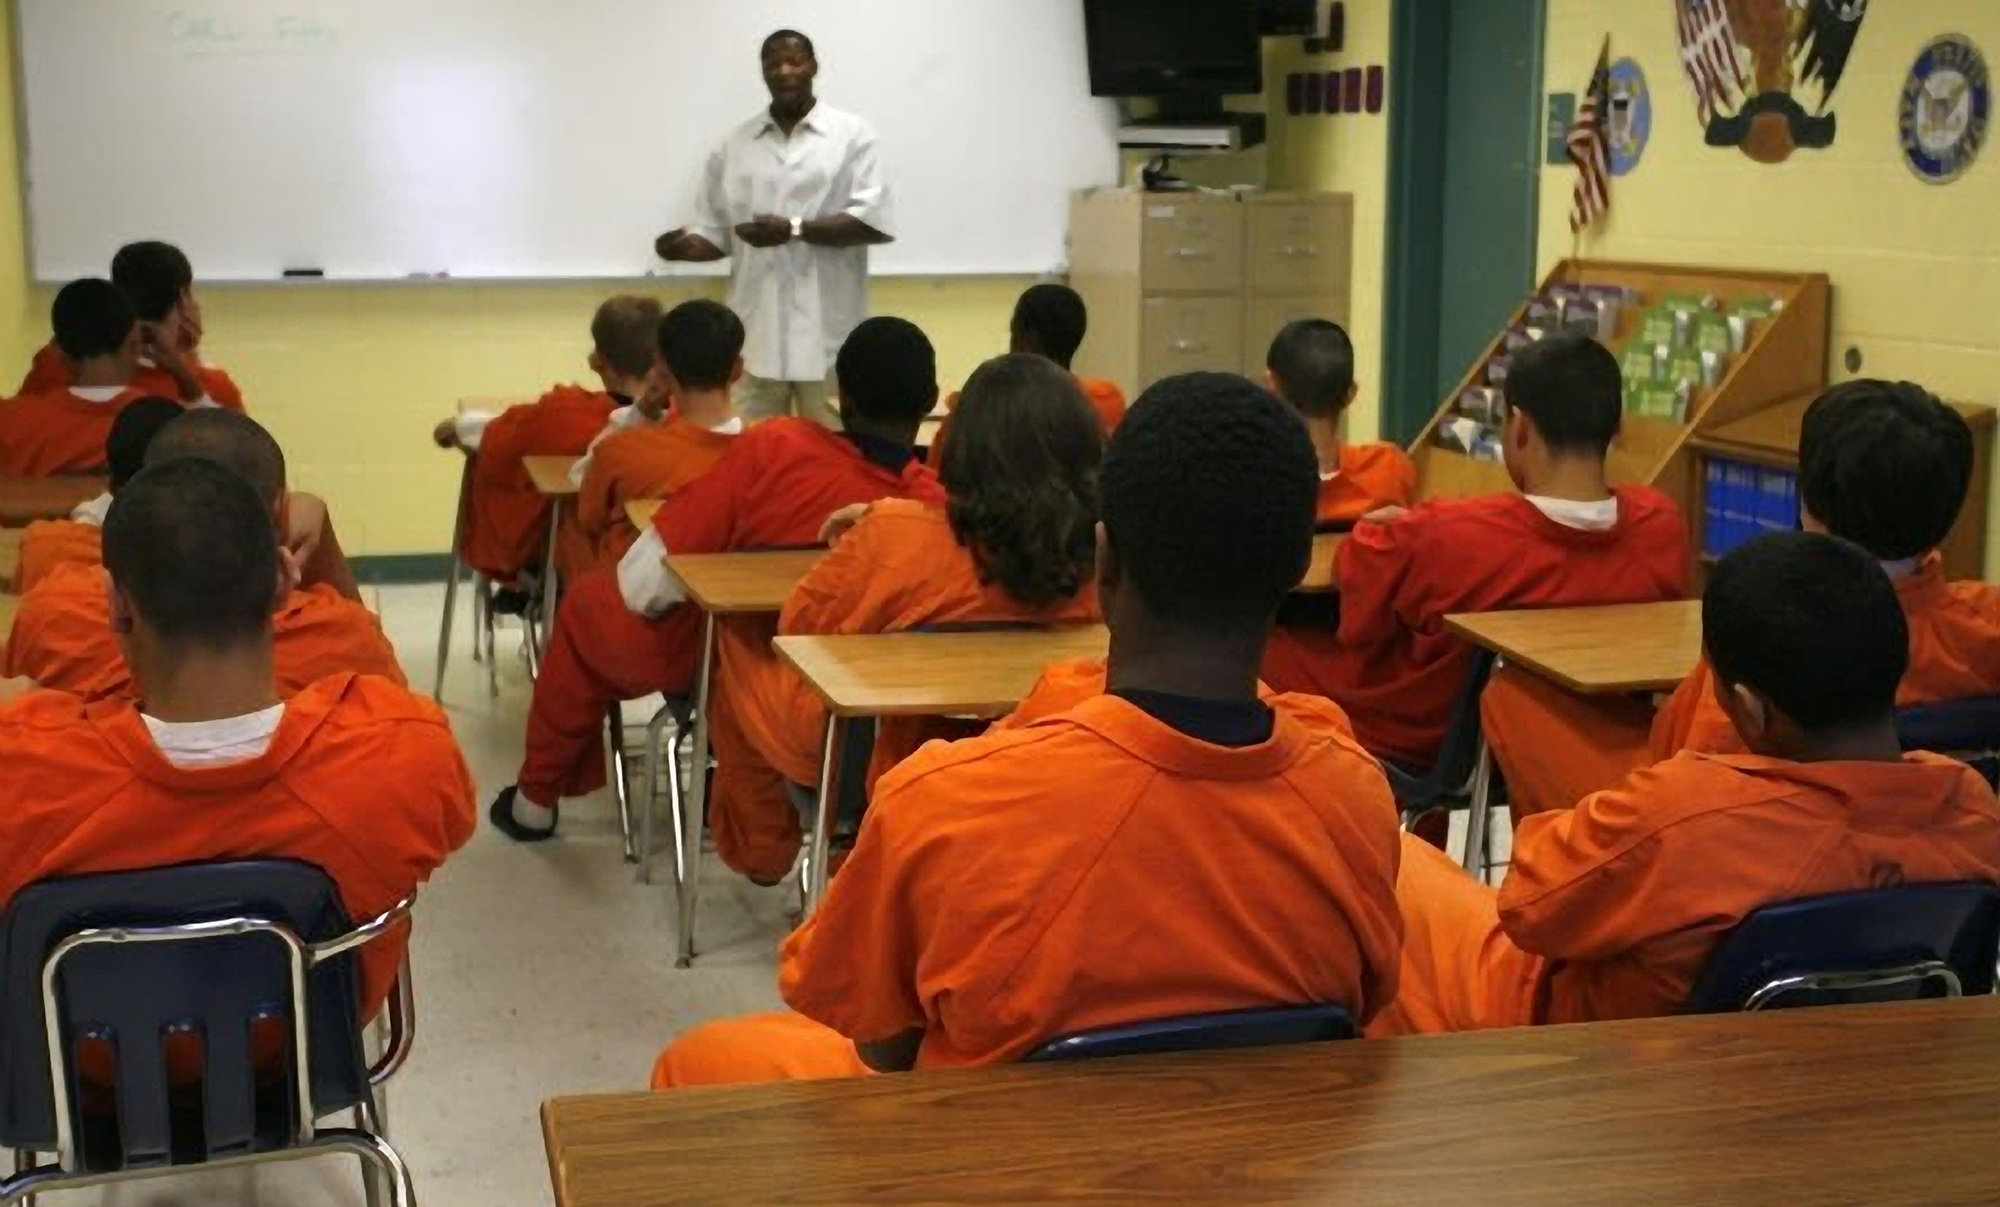 Teenagers at the Hillsborough County Juvenile Detention Center East in Tampa, Florida, in September 2020.